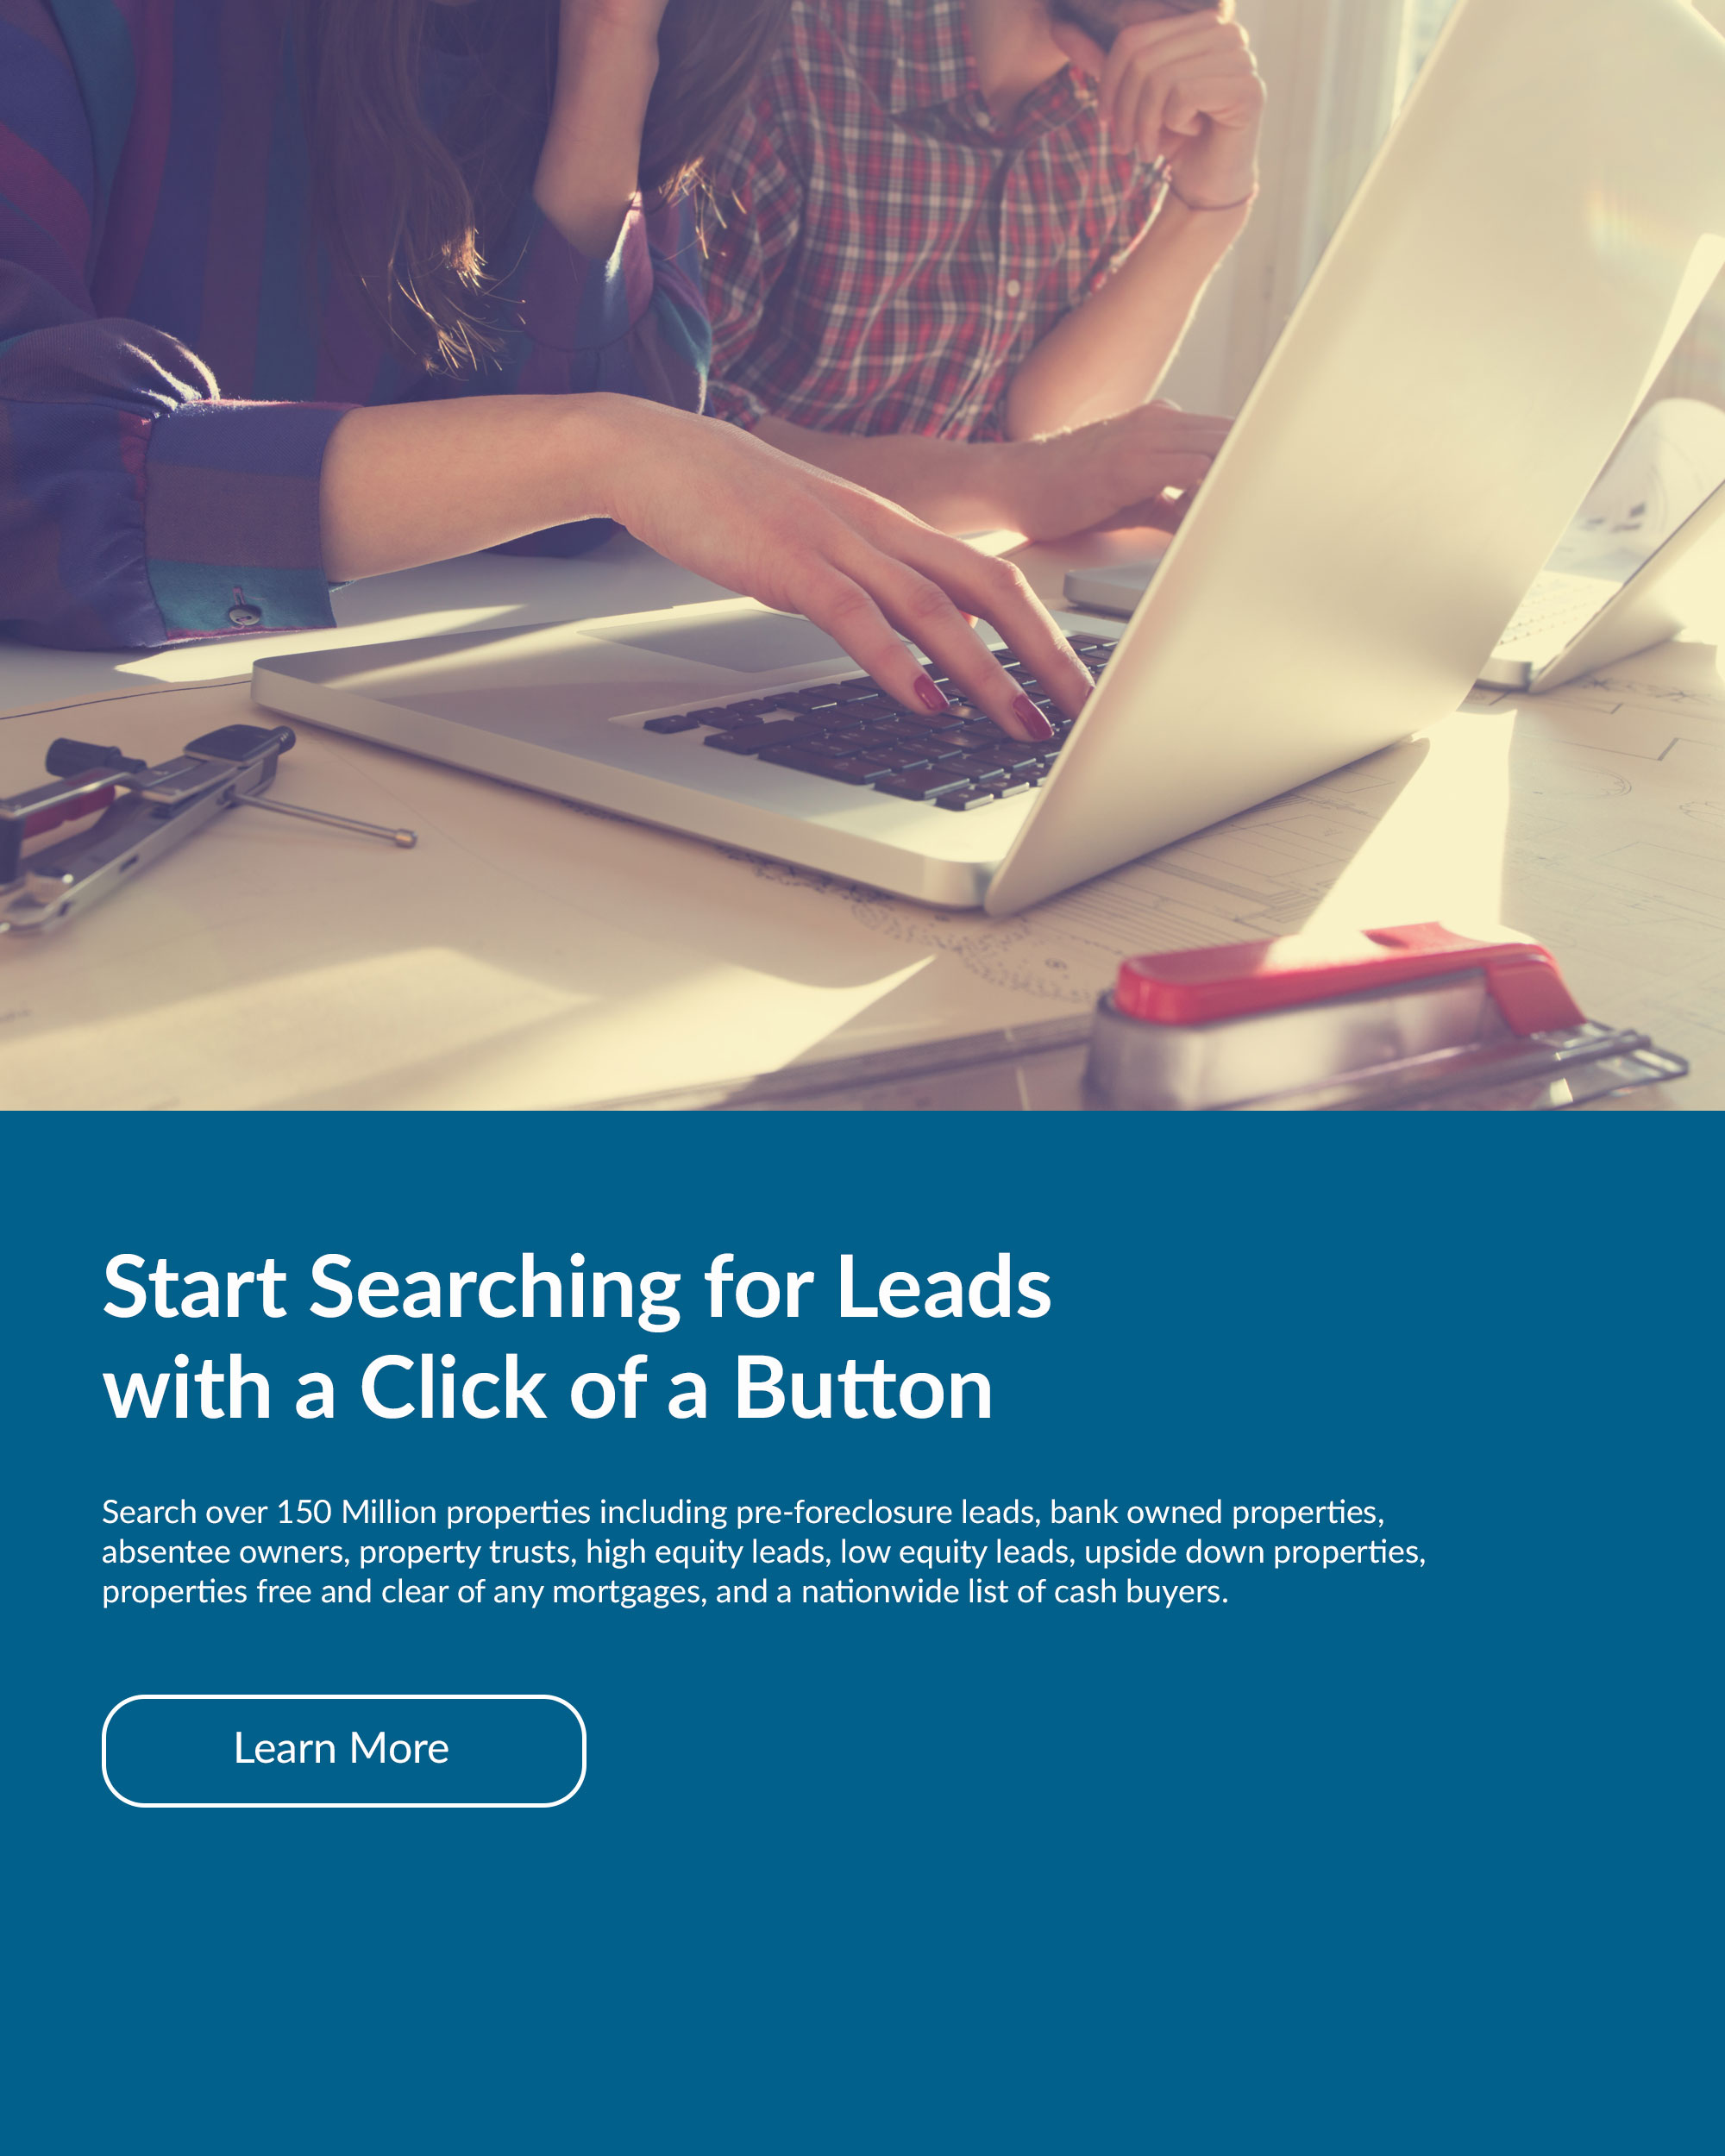 Start Searching Leads